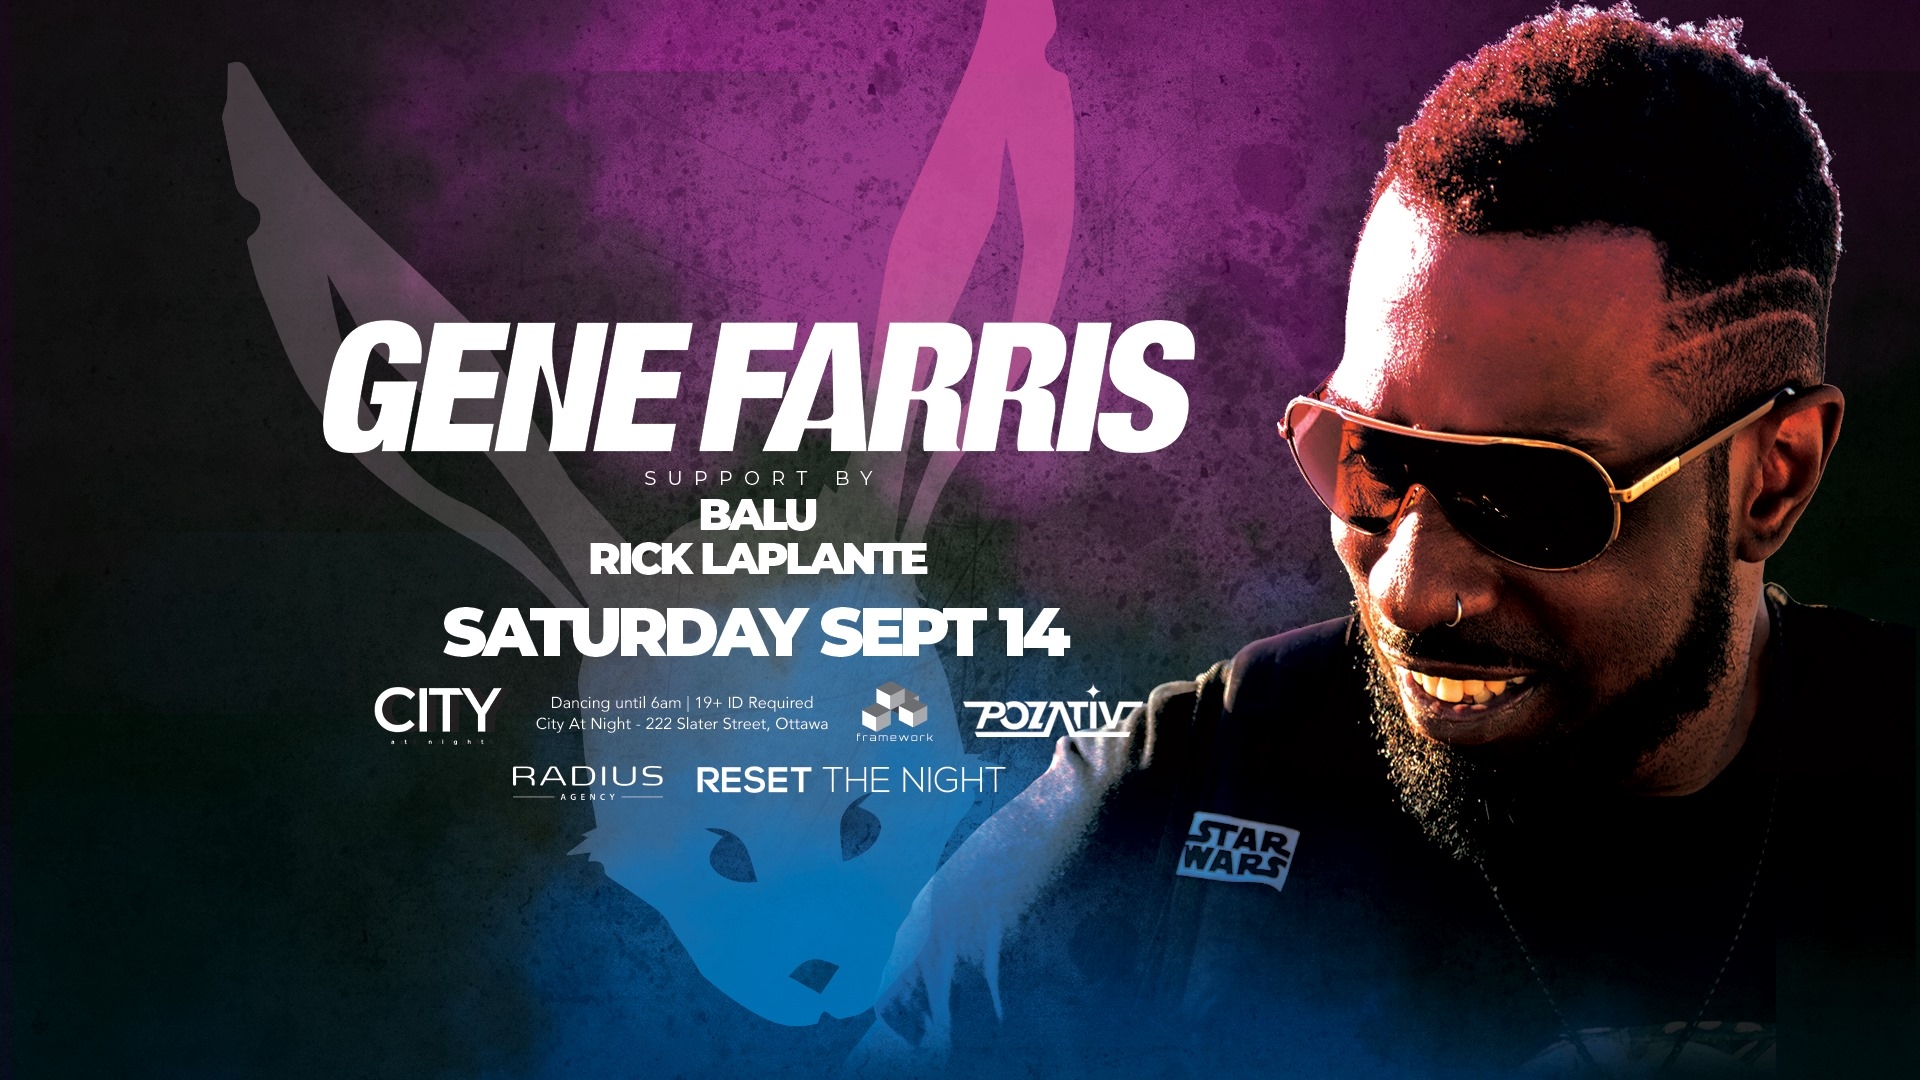 Gene Farris at White Rabbit: All Night Dancing 11pm to 6am